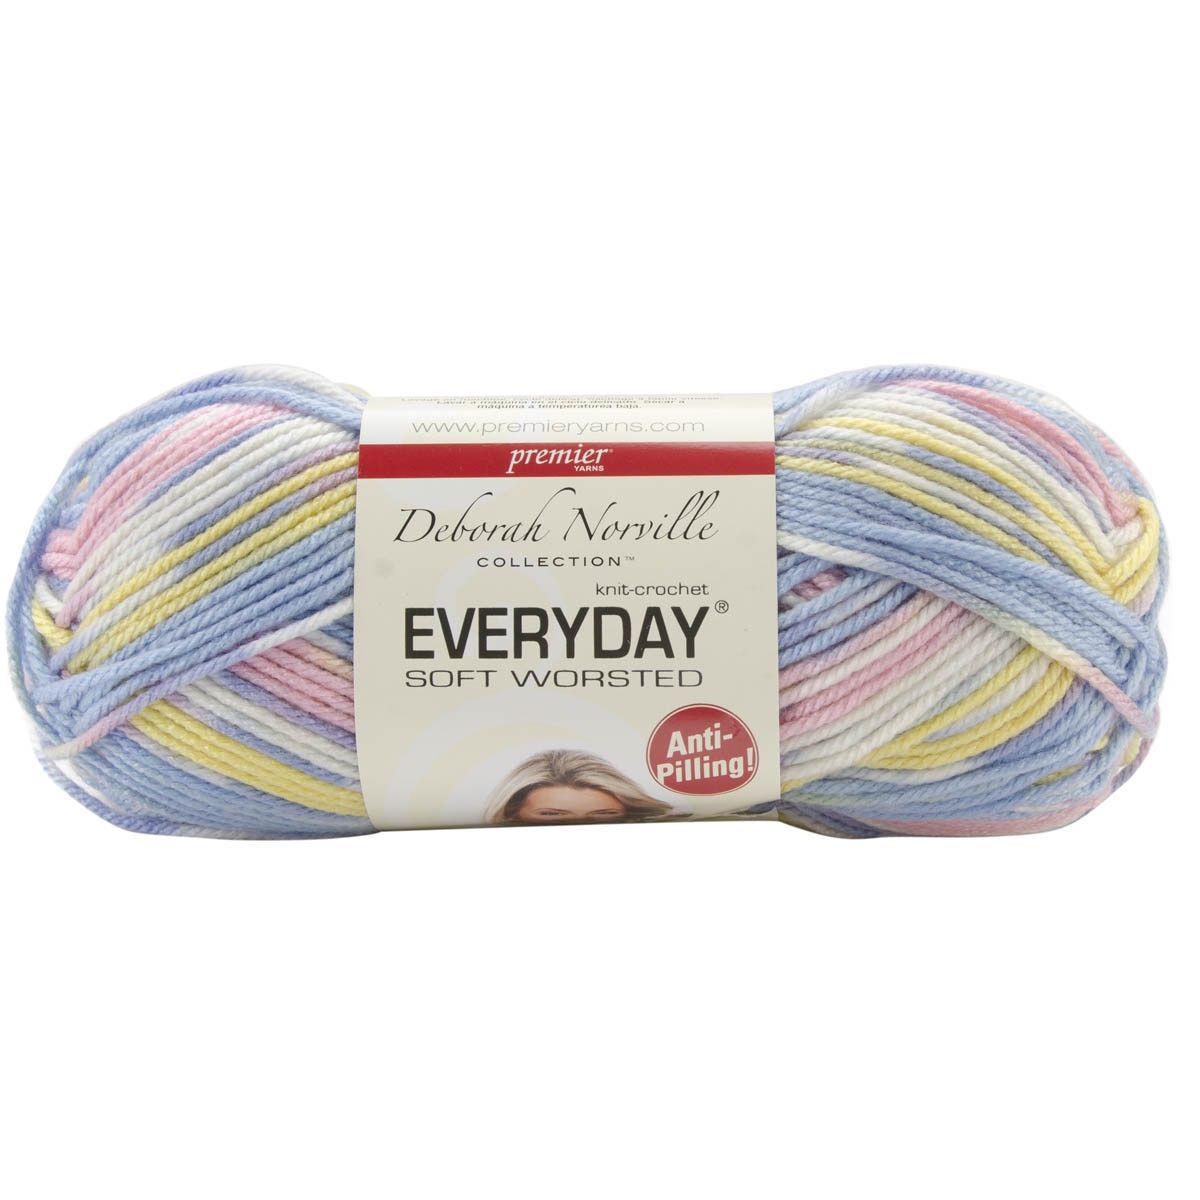 Premier Deborah Norville Collection Everyday Print Yarn-Pattycake